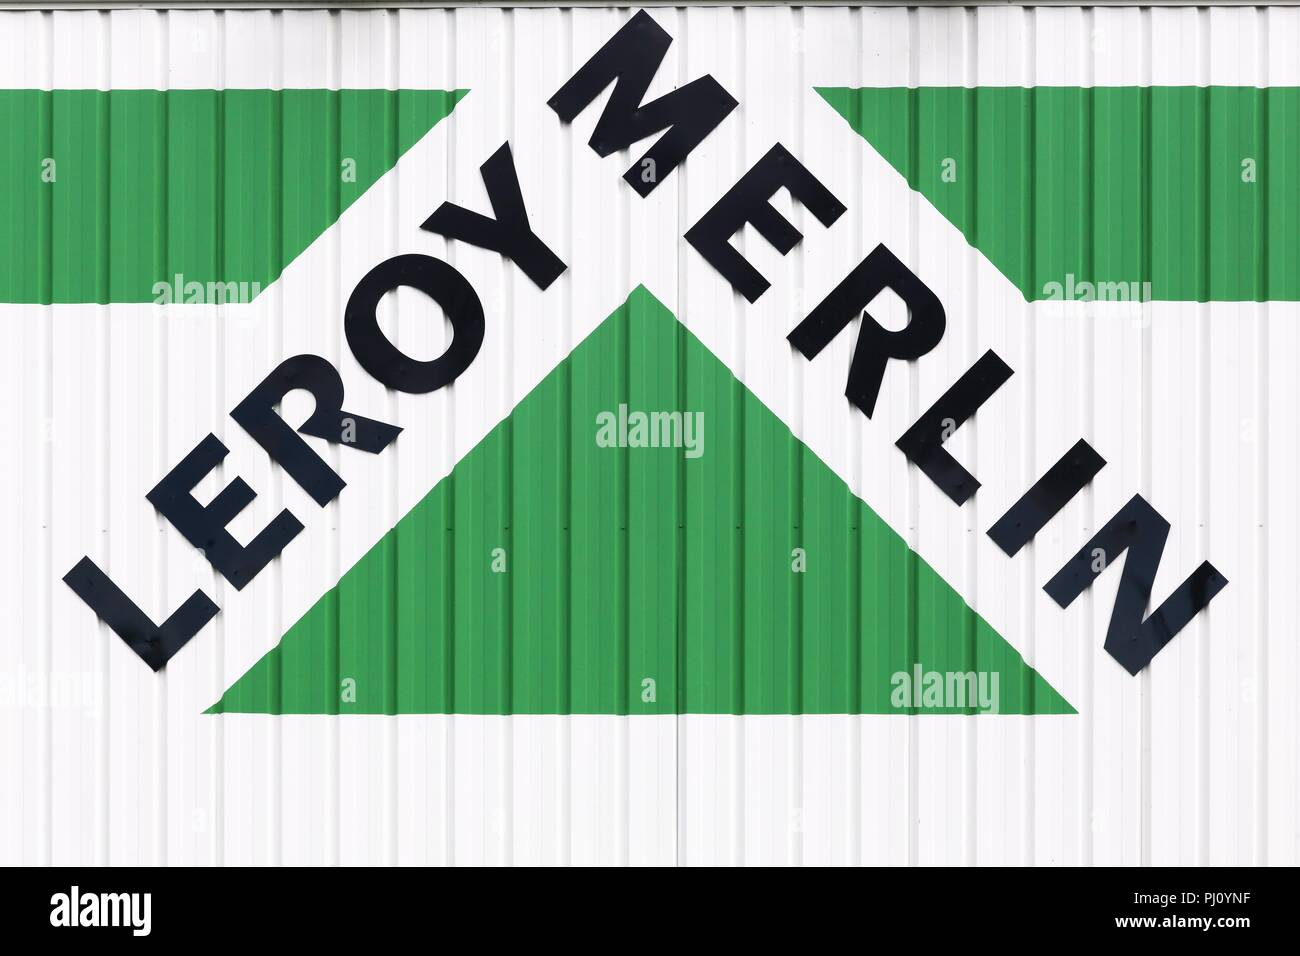 Leroy Merlin France Stock Photos Leroy Merlin France Stock